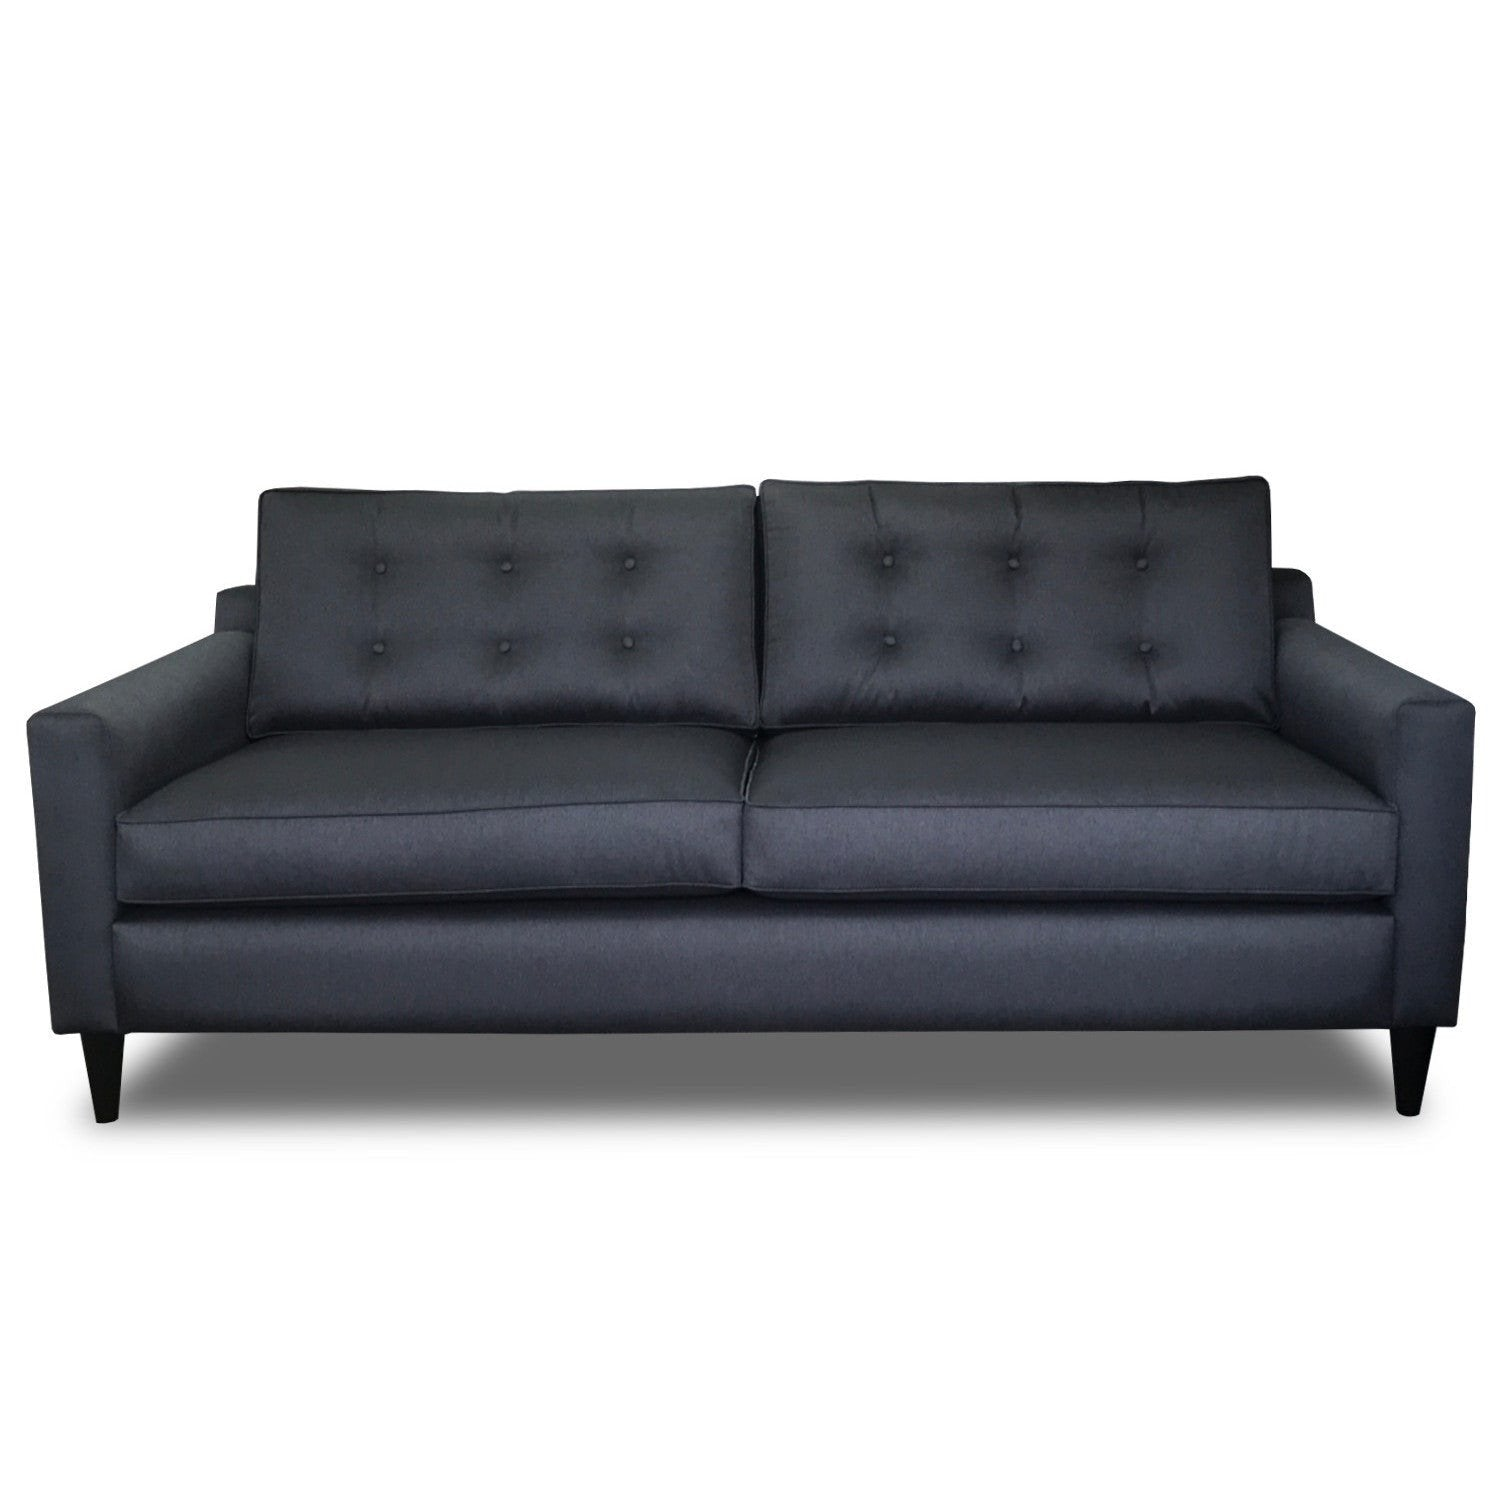 Manhattan 3 Seater Sofa - The Furniture Store & The Bed Shop